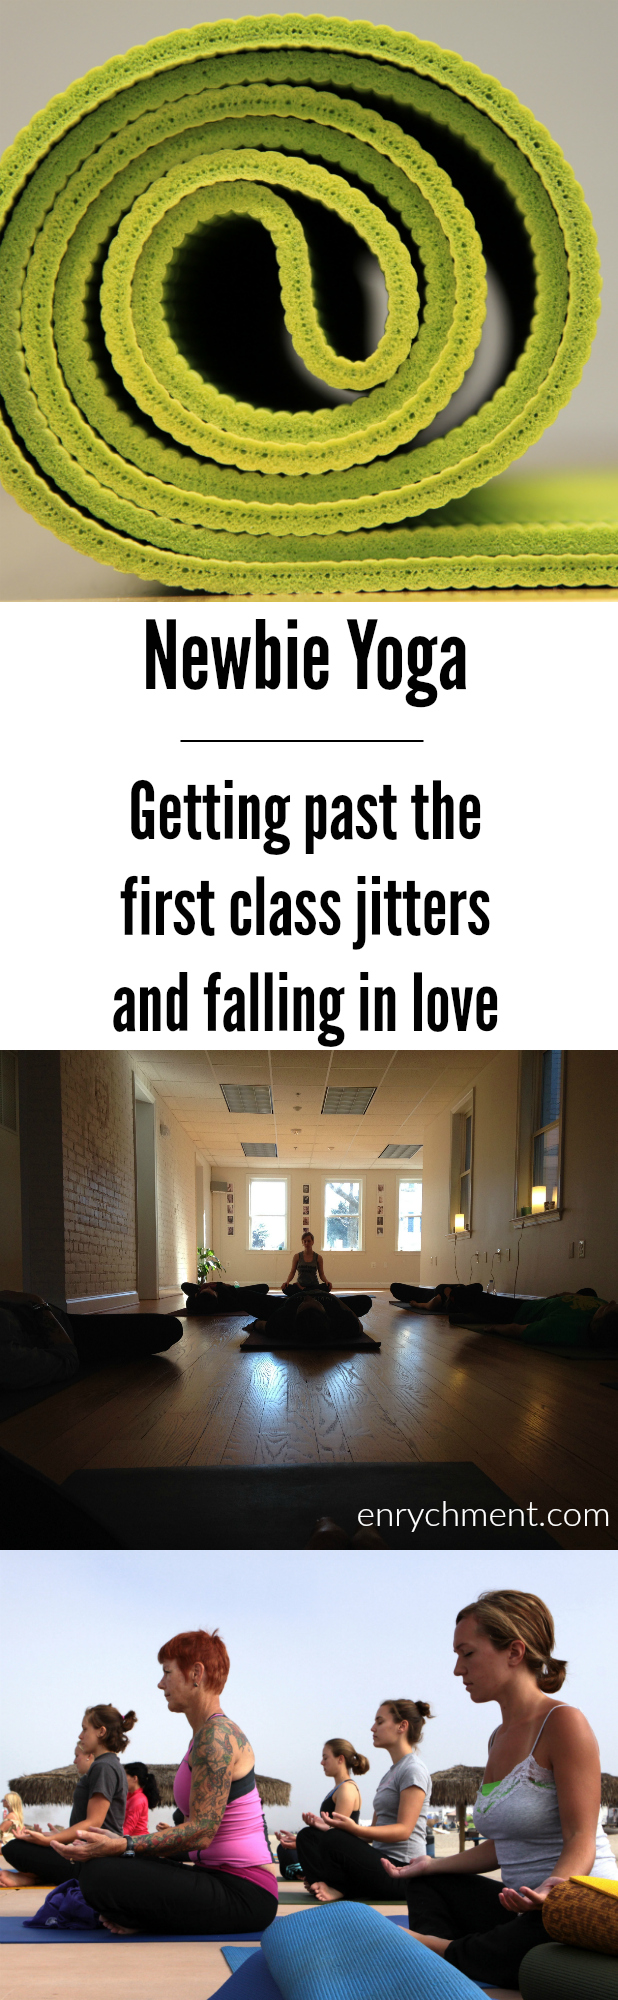 Newbie Yoga: Getting past the first class jitters and falling in love